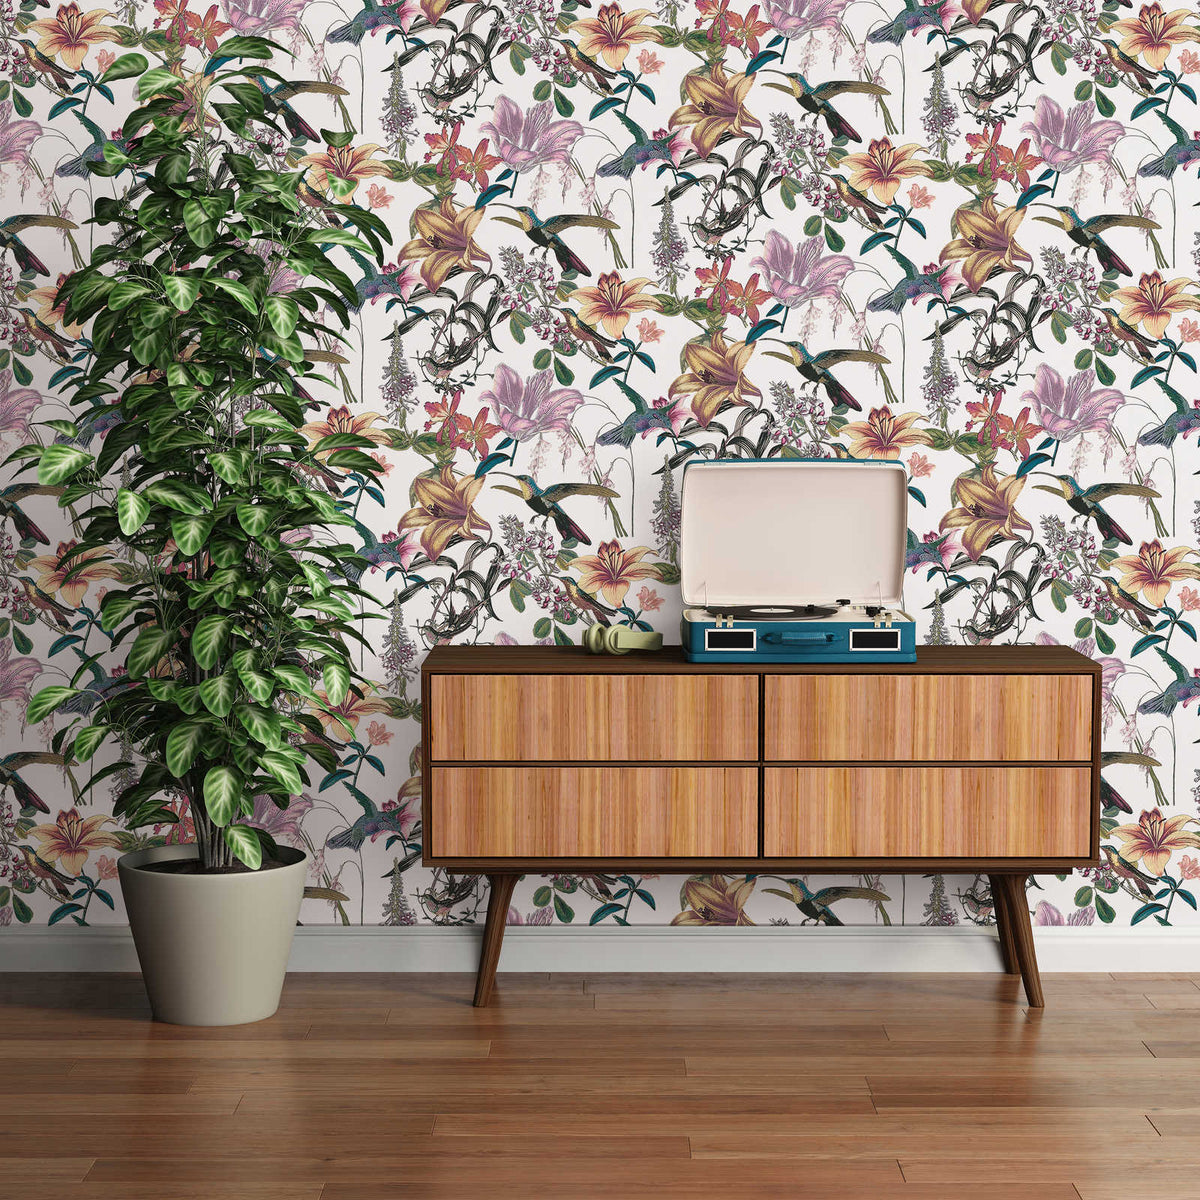 Floral & Tree Wallpaper